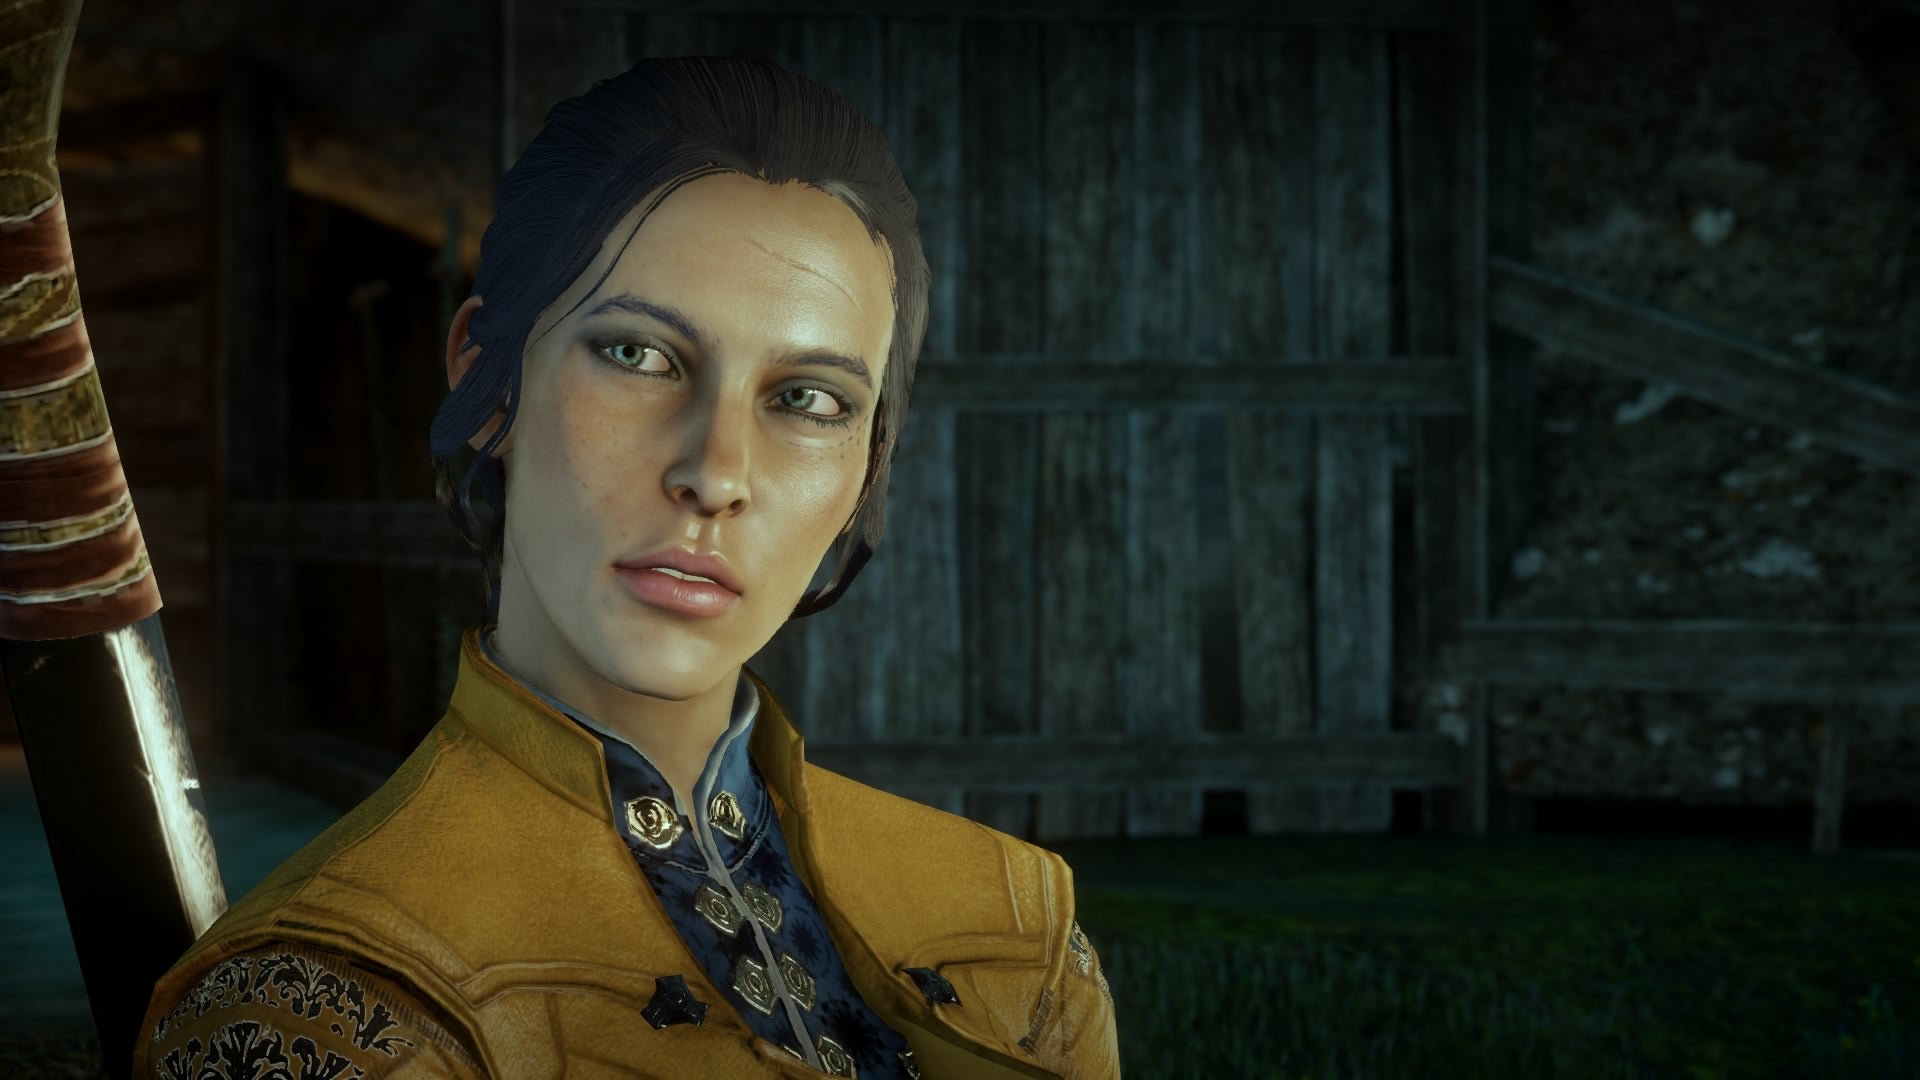 Dragon age profile not updating